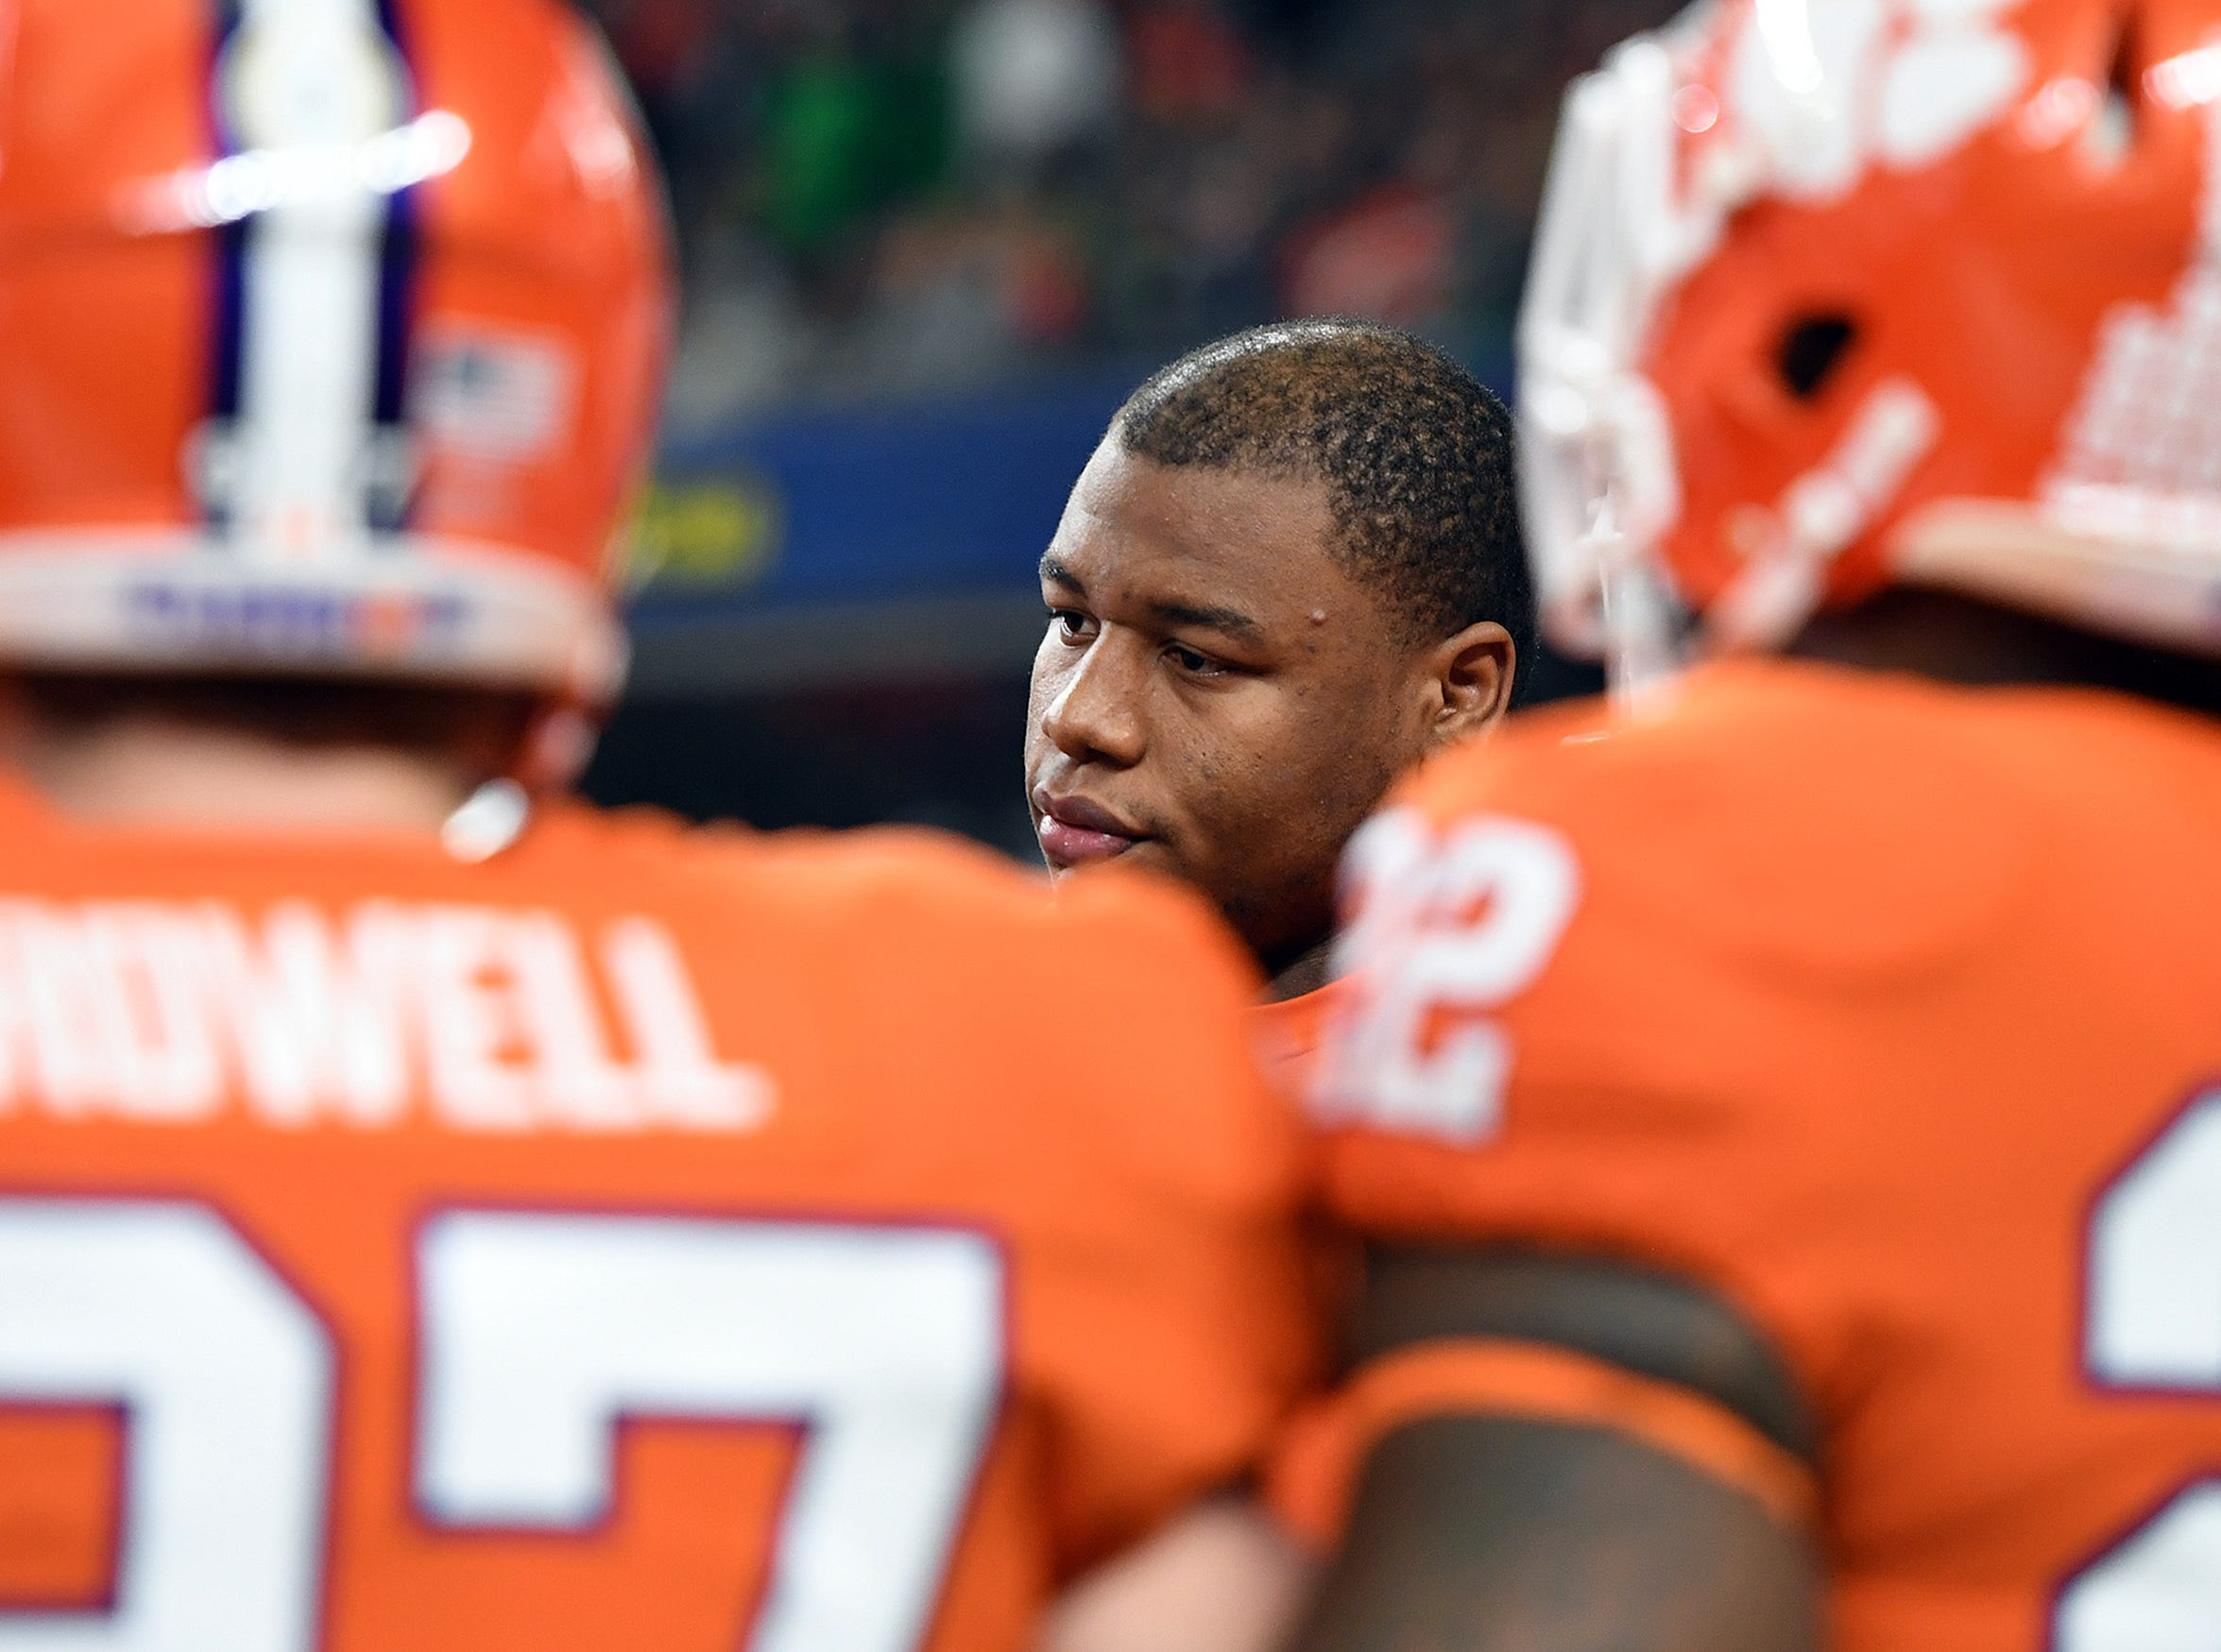 Clemson defensive lineman Dexter Lawrence during pregame of the Goodyear Cotton Bowl at AT&T stadium in Arlington, TX Saturday, December 29, 2018.